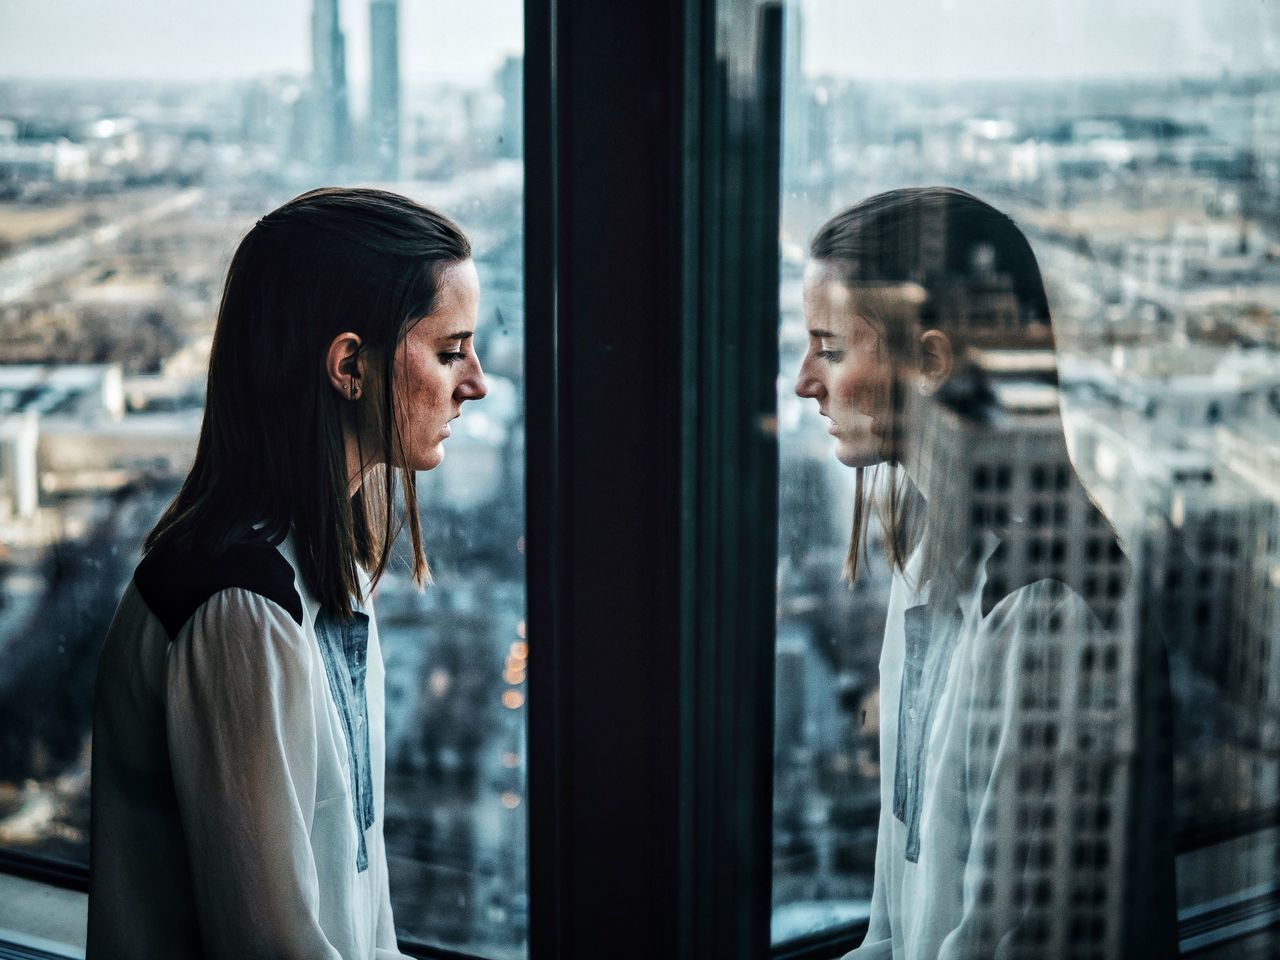 Side view of woman looking through window with reflection